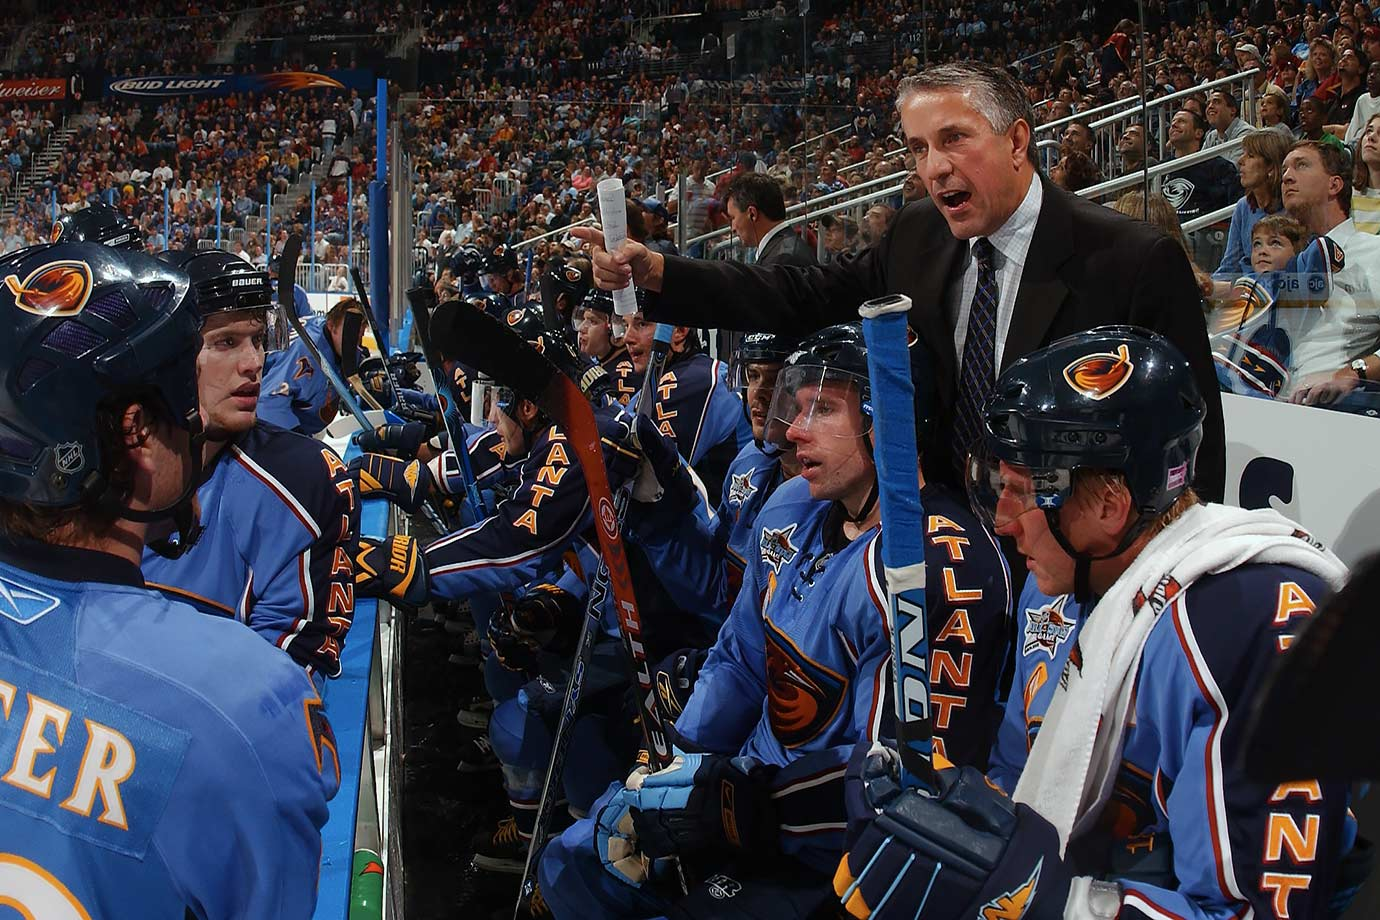 "Leading the Thrashers to the best season in their history—franchise record 43-28-11 mark, Southeast Division title, first playoff appearance—wasn't enough to earn their fourth-year coach any job security. Their 0-6-0 skid to start 2007-08 led to Hartley being booted. ""We still have 76 games left,"" said GM Don Waddell, who took over behind the bench. ""There is lots of season left to make something up. We just couldn't let it go any further."" Unfortunately the Thrashers DNQed and didn't see the postseason again until after their 2011 move to Winnipeg."